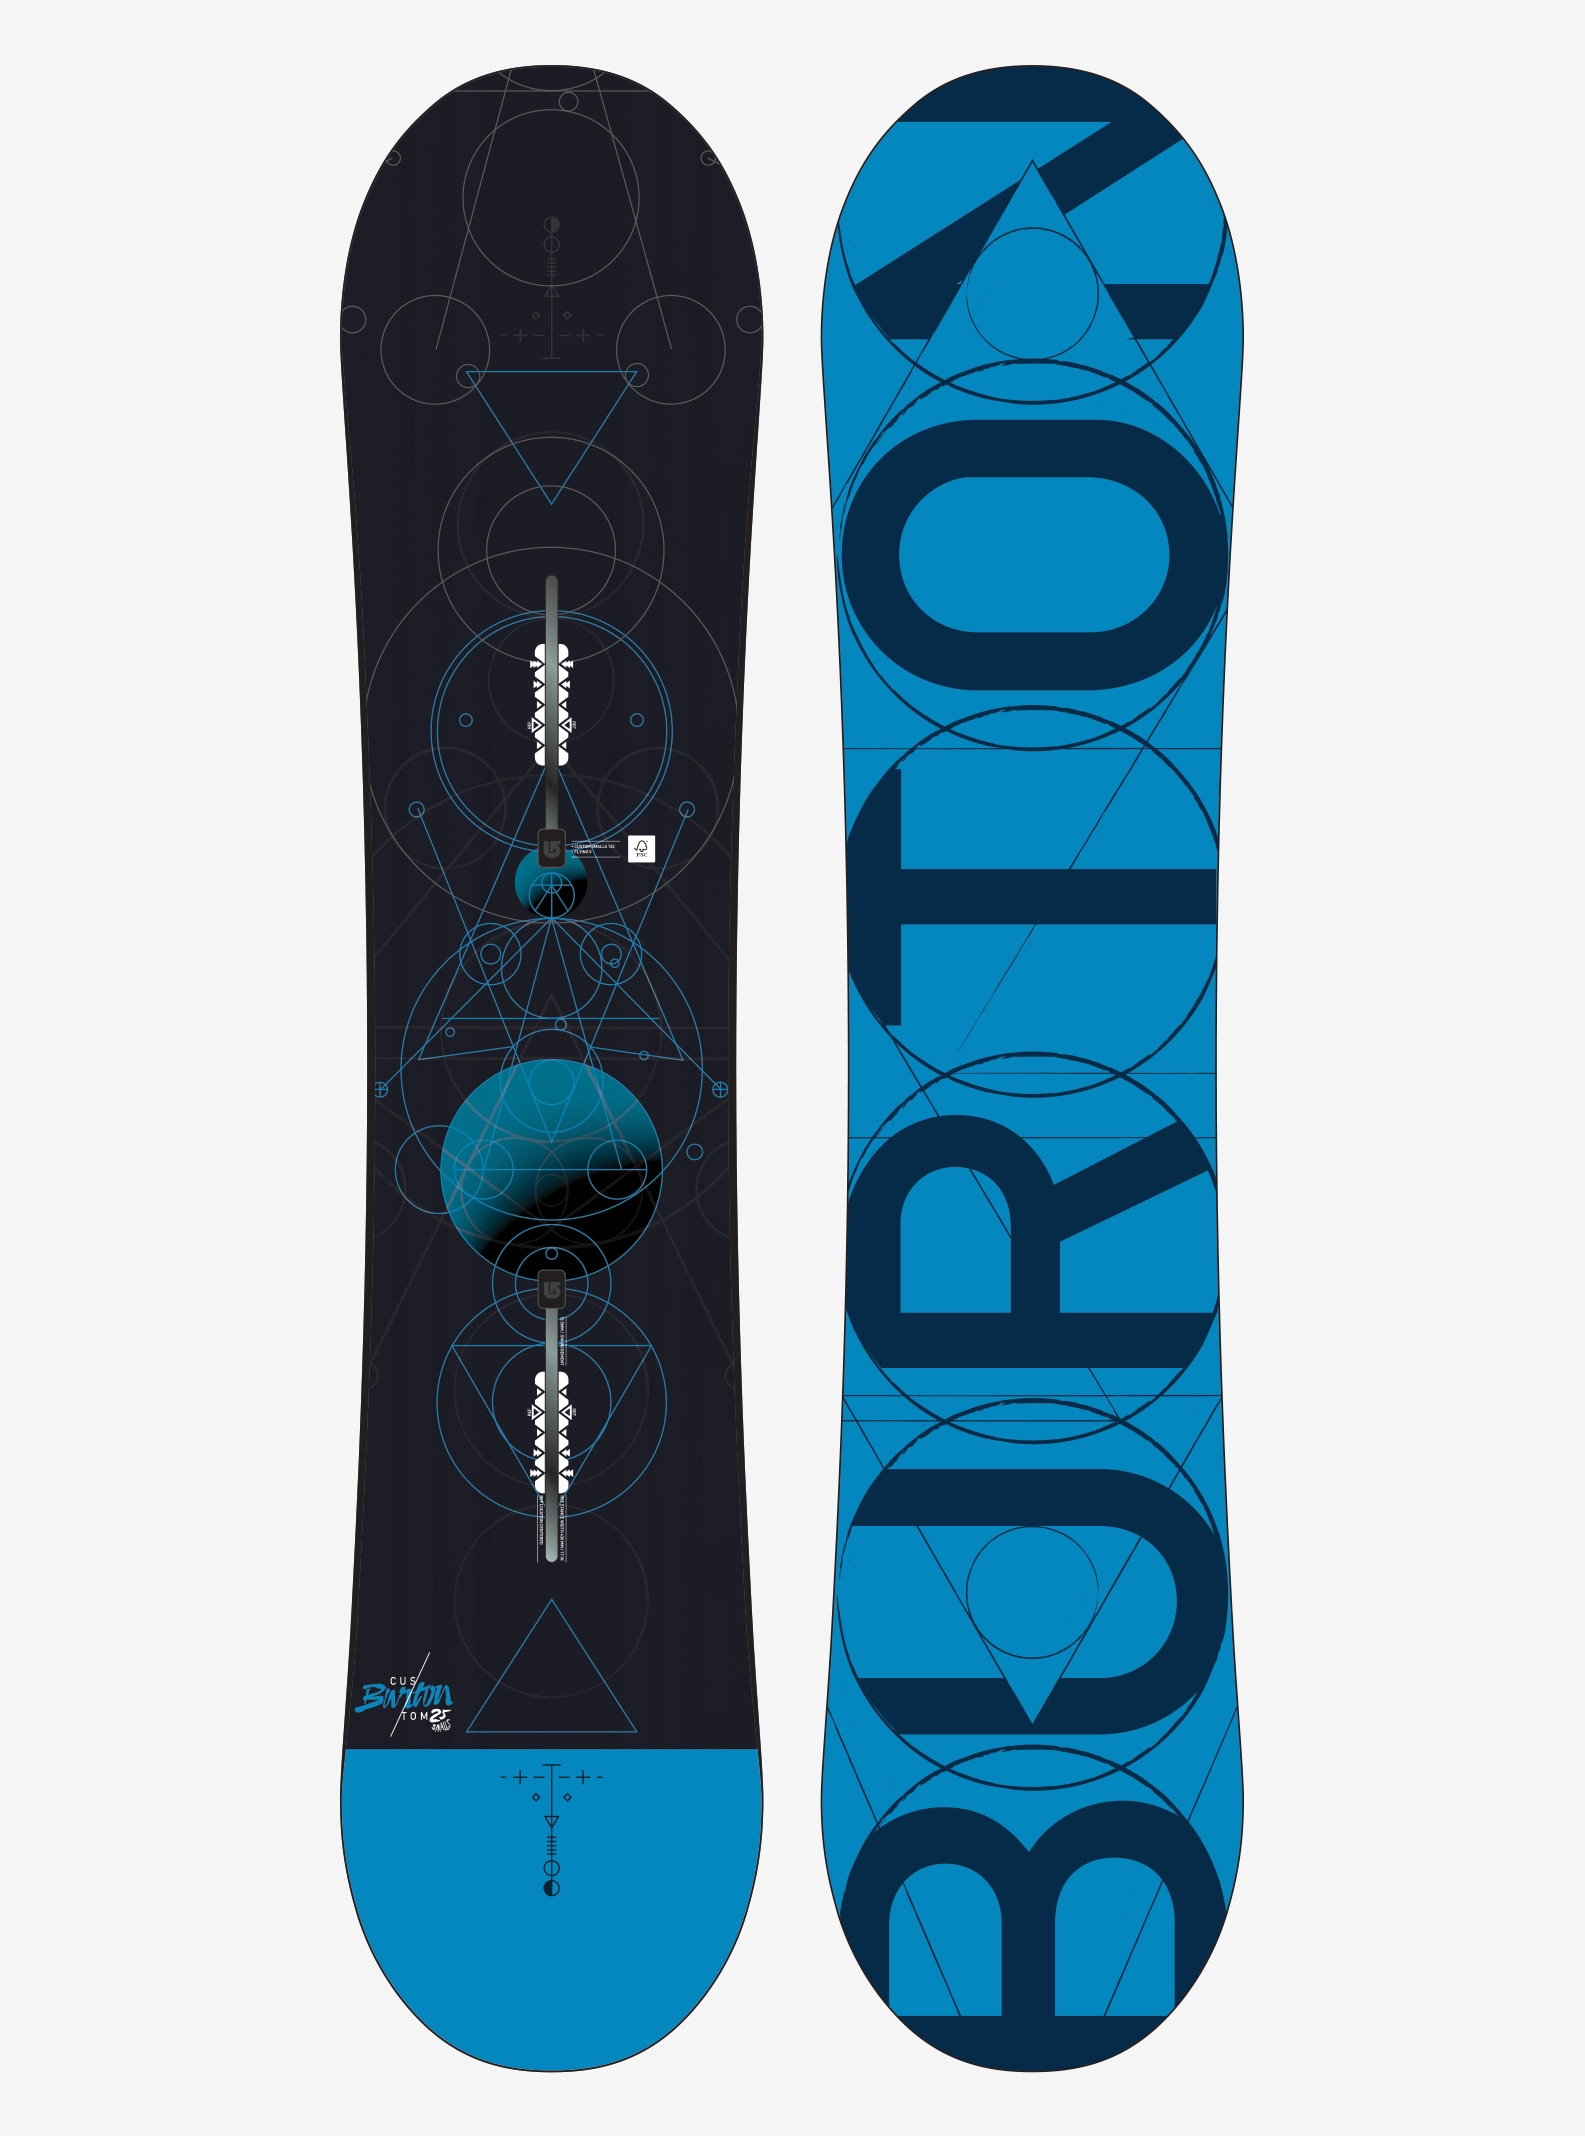 Boys' Burton Custom Smalls Snowboard shown in 125